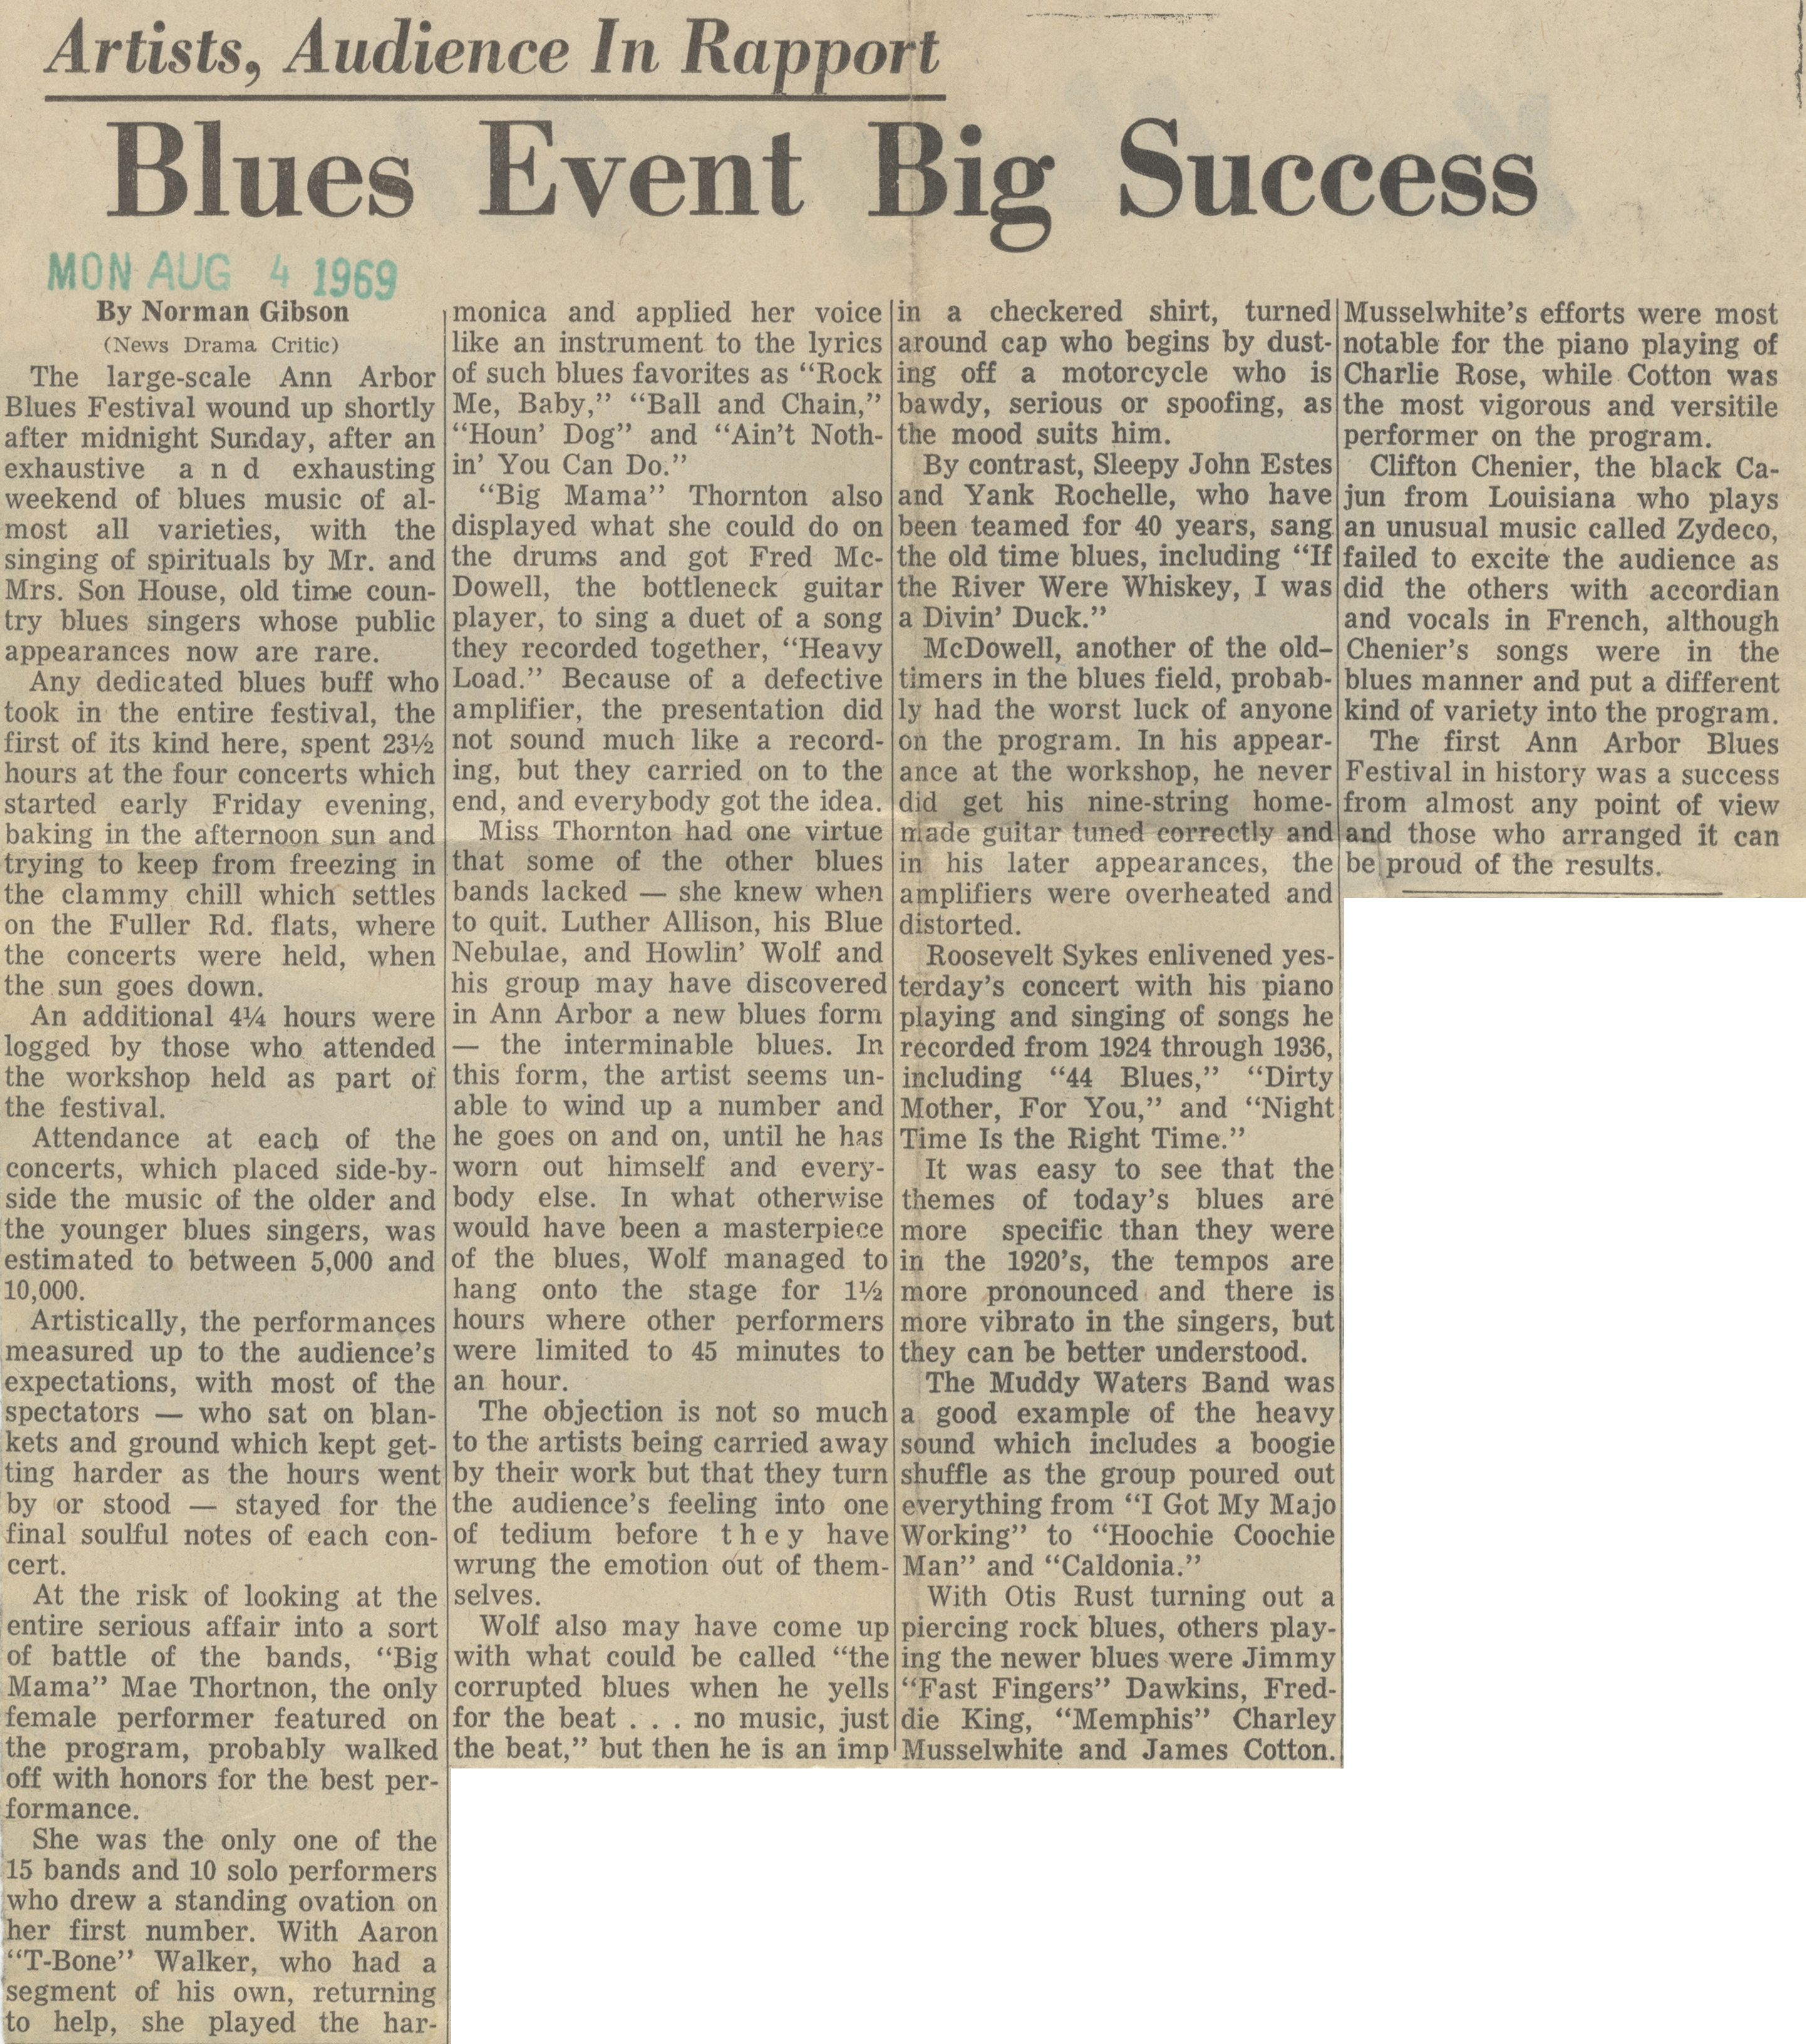 Blues Event Big Success image